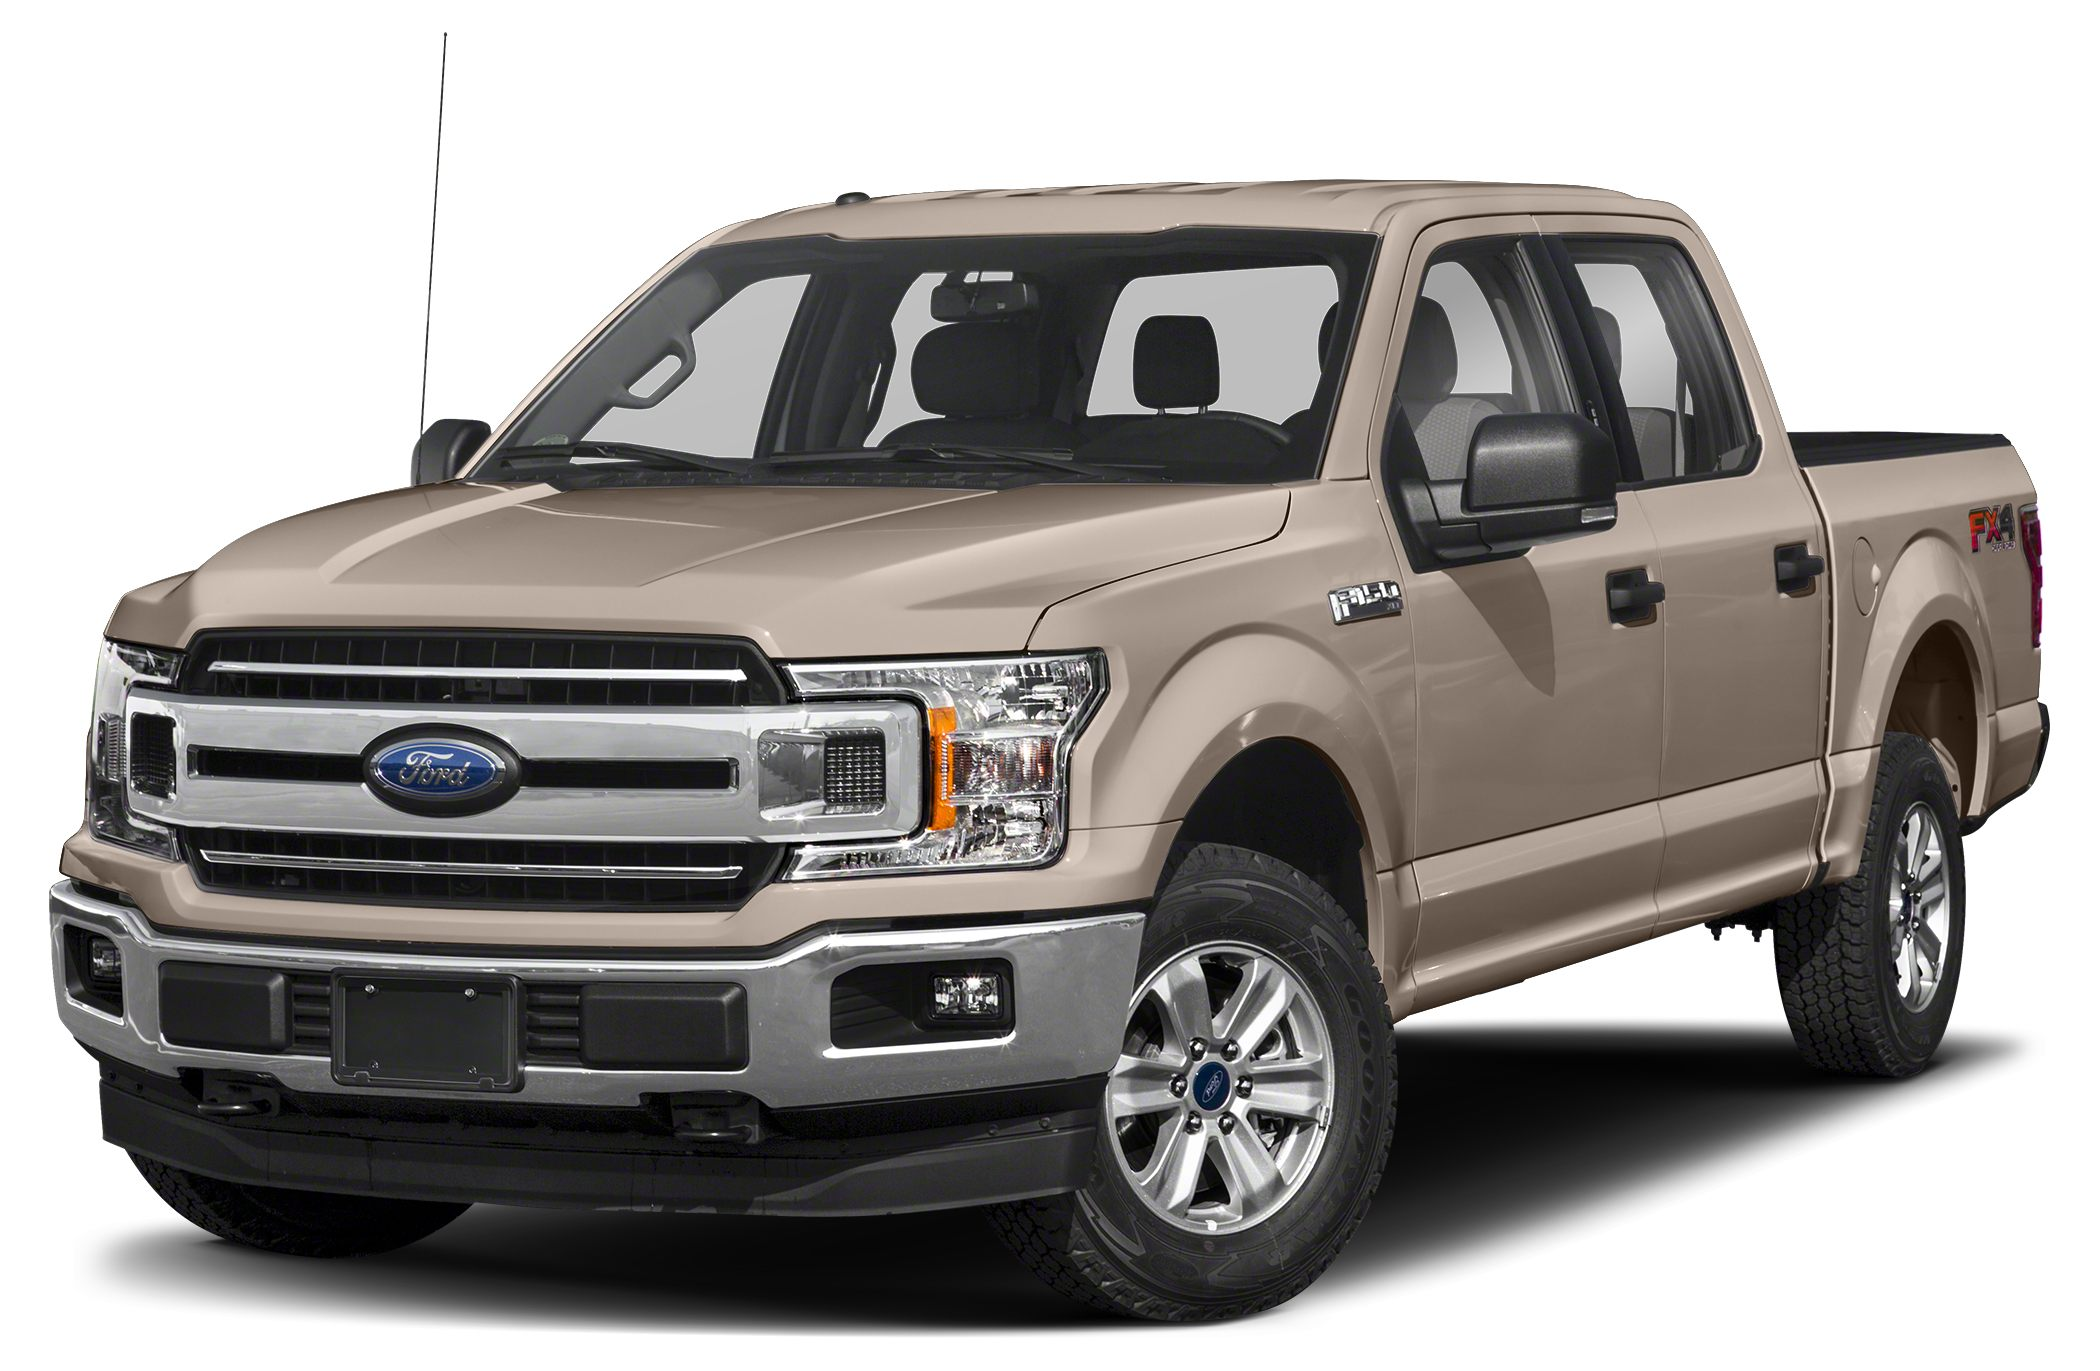 New 2018 ford f 150 lariat truck white gold color inventory vehicle details at courtesy motors inc your hattiesburg mississippi ford dealer